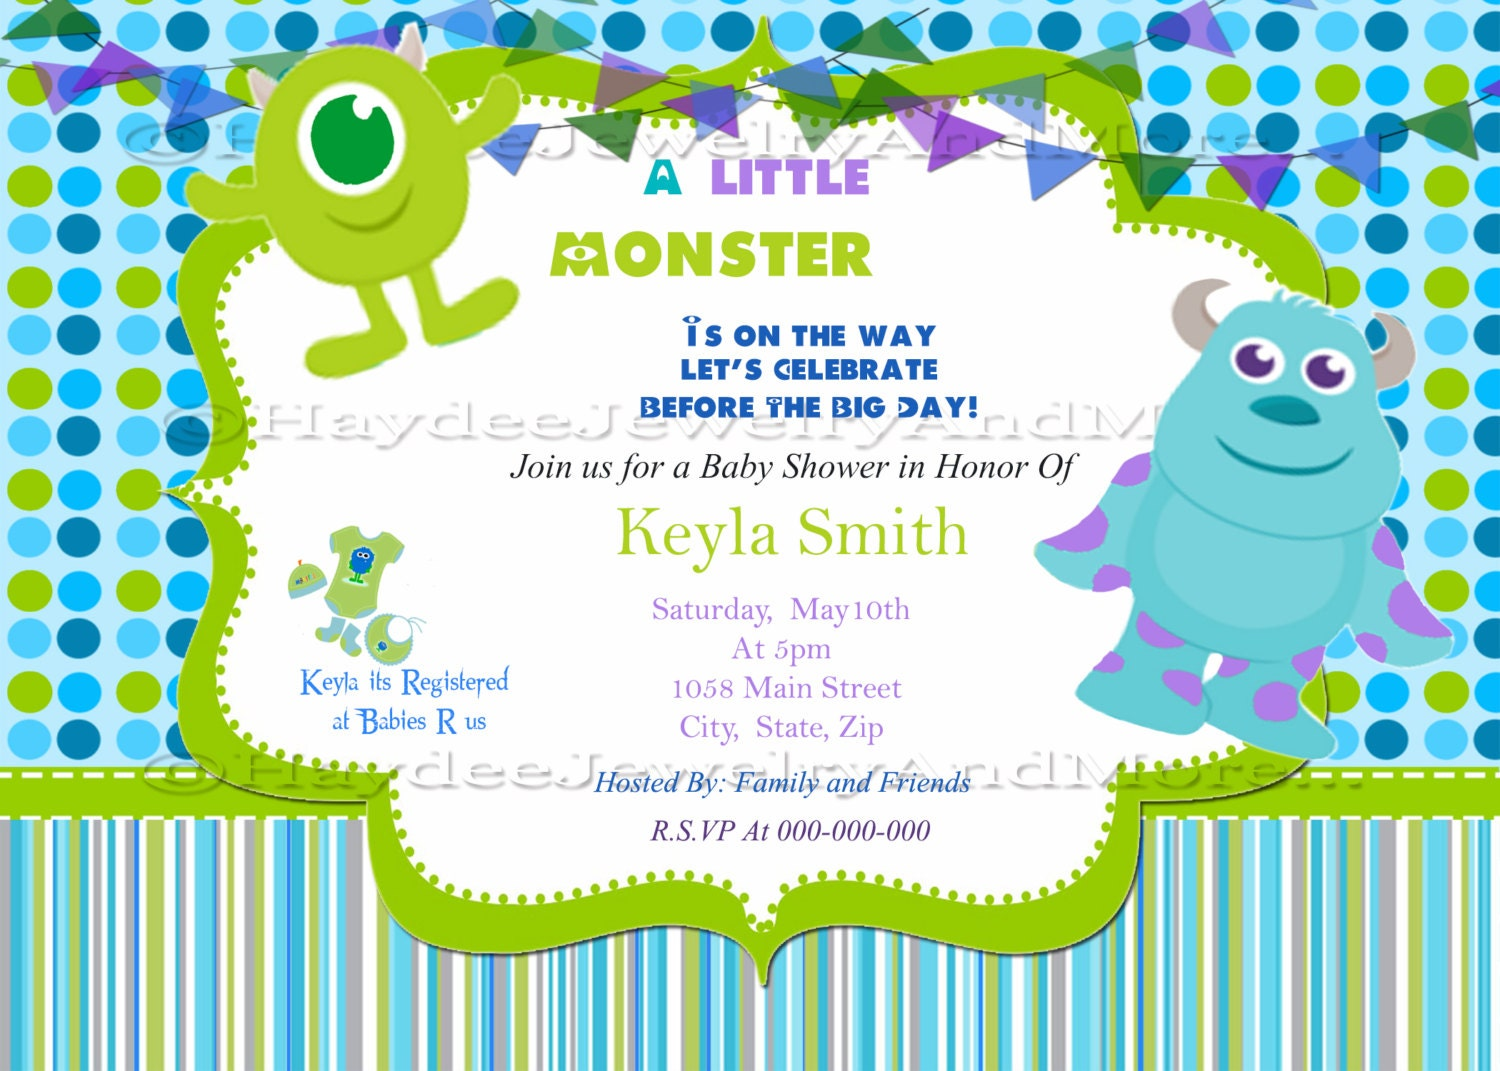 Monster Inc Baby Shower Invitations is one of our best ideas you might choose for invitation design